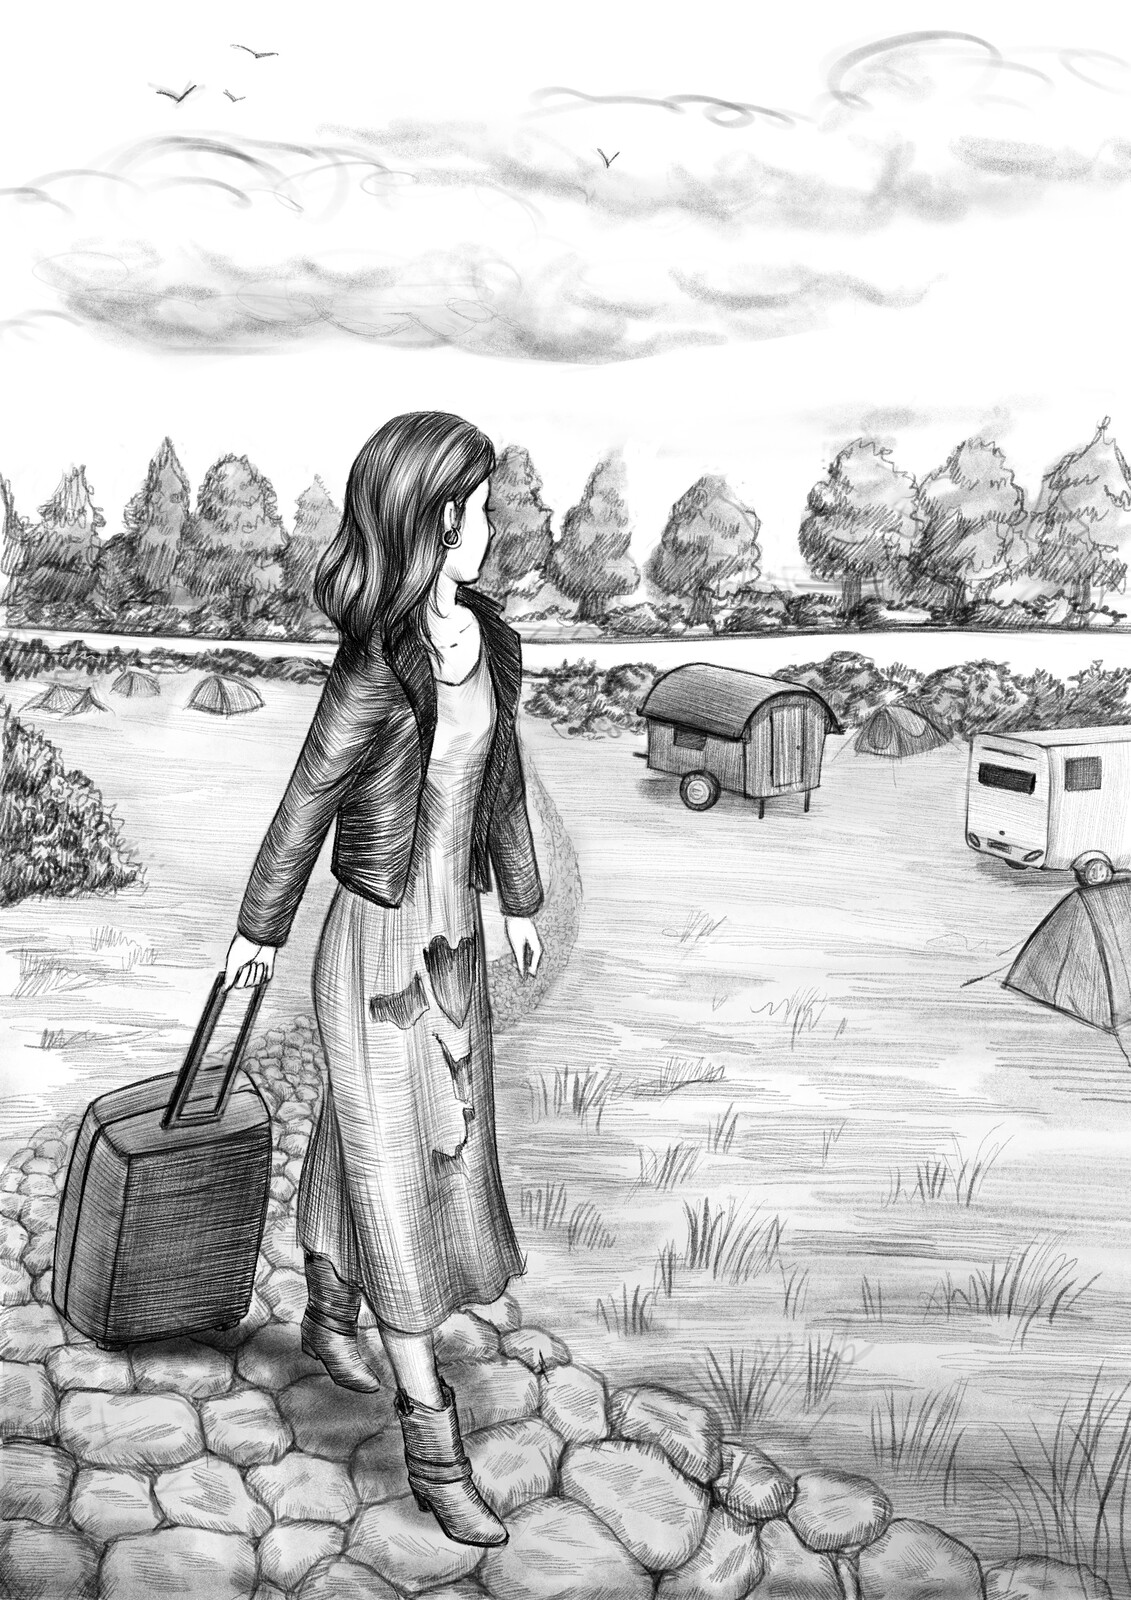 The Camping - Book Illustration